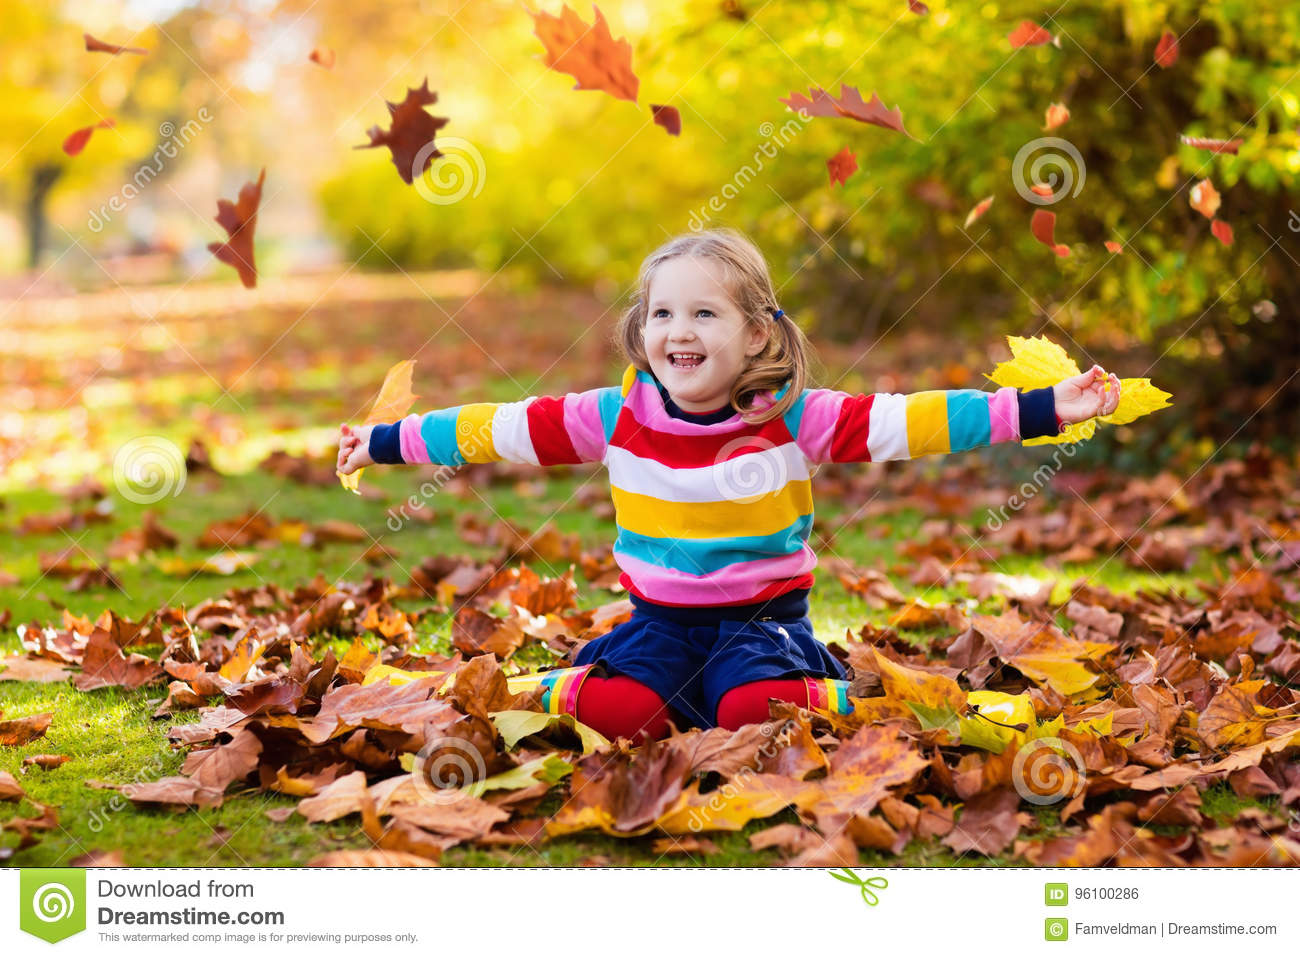 Child In Fall Park Kid With Autumn Leaves Stock Photo